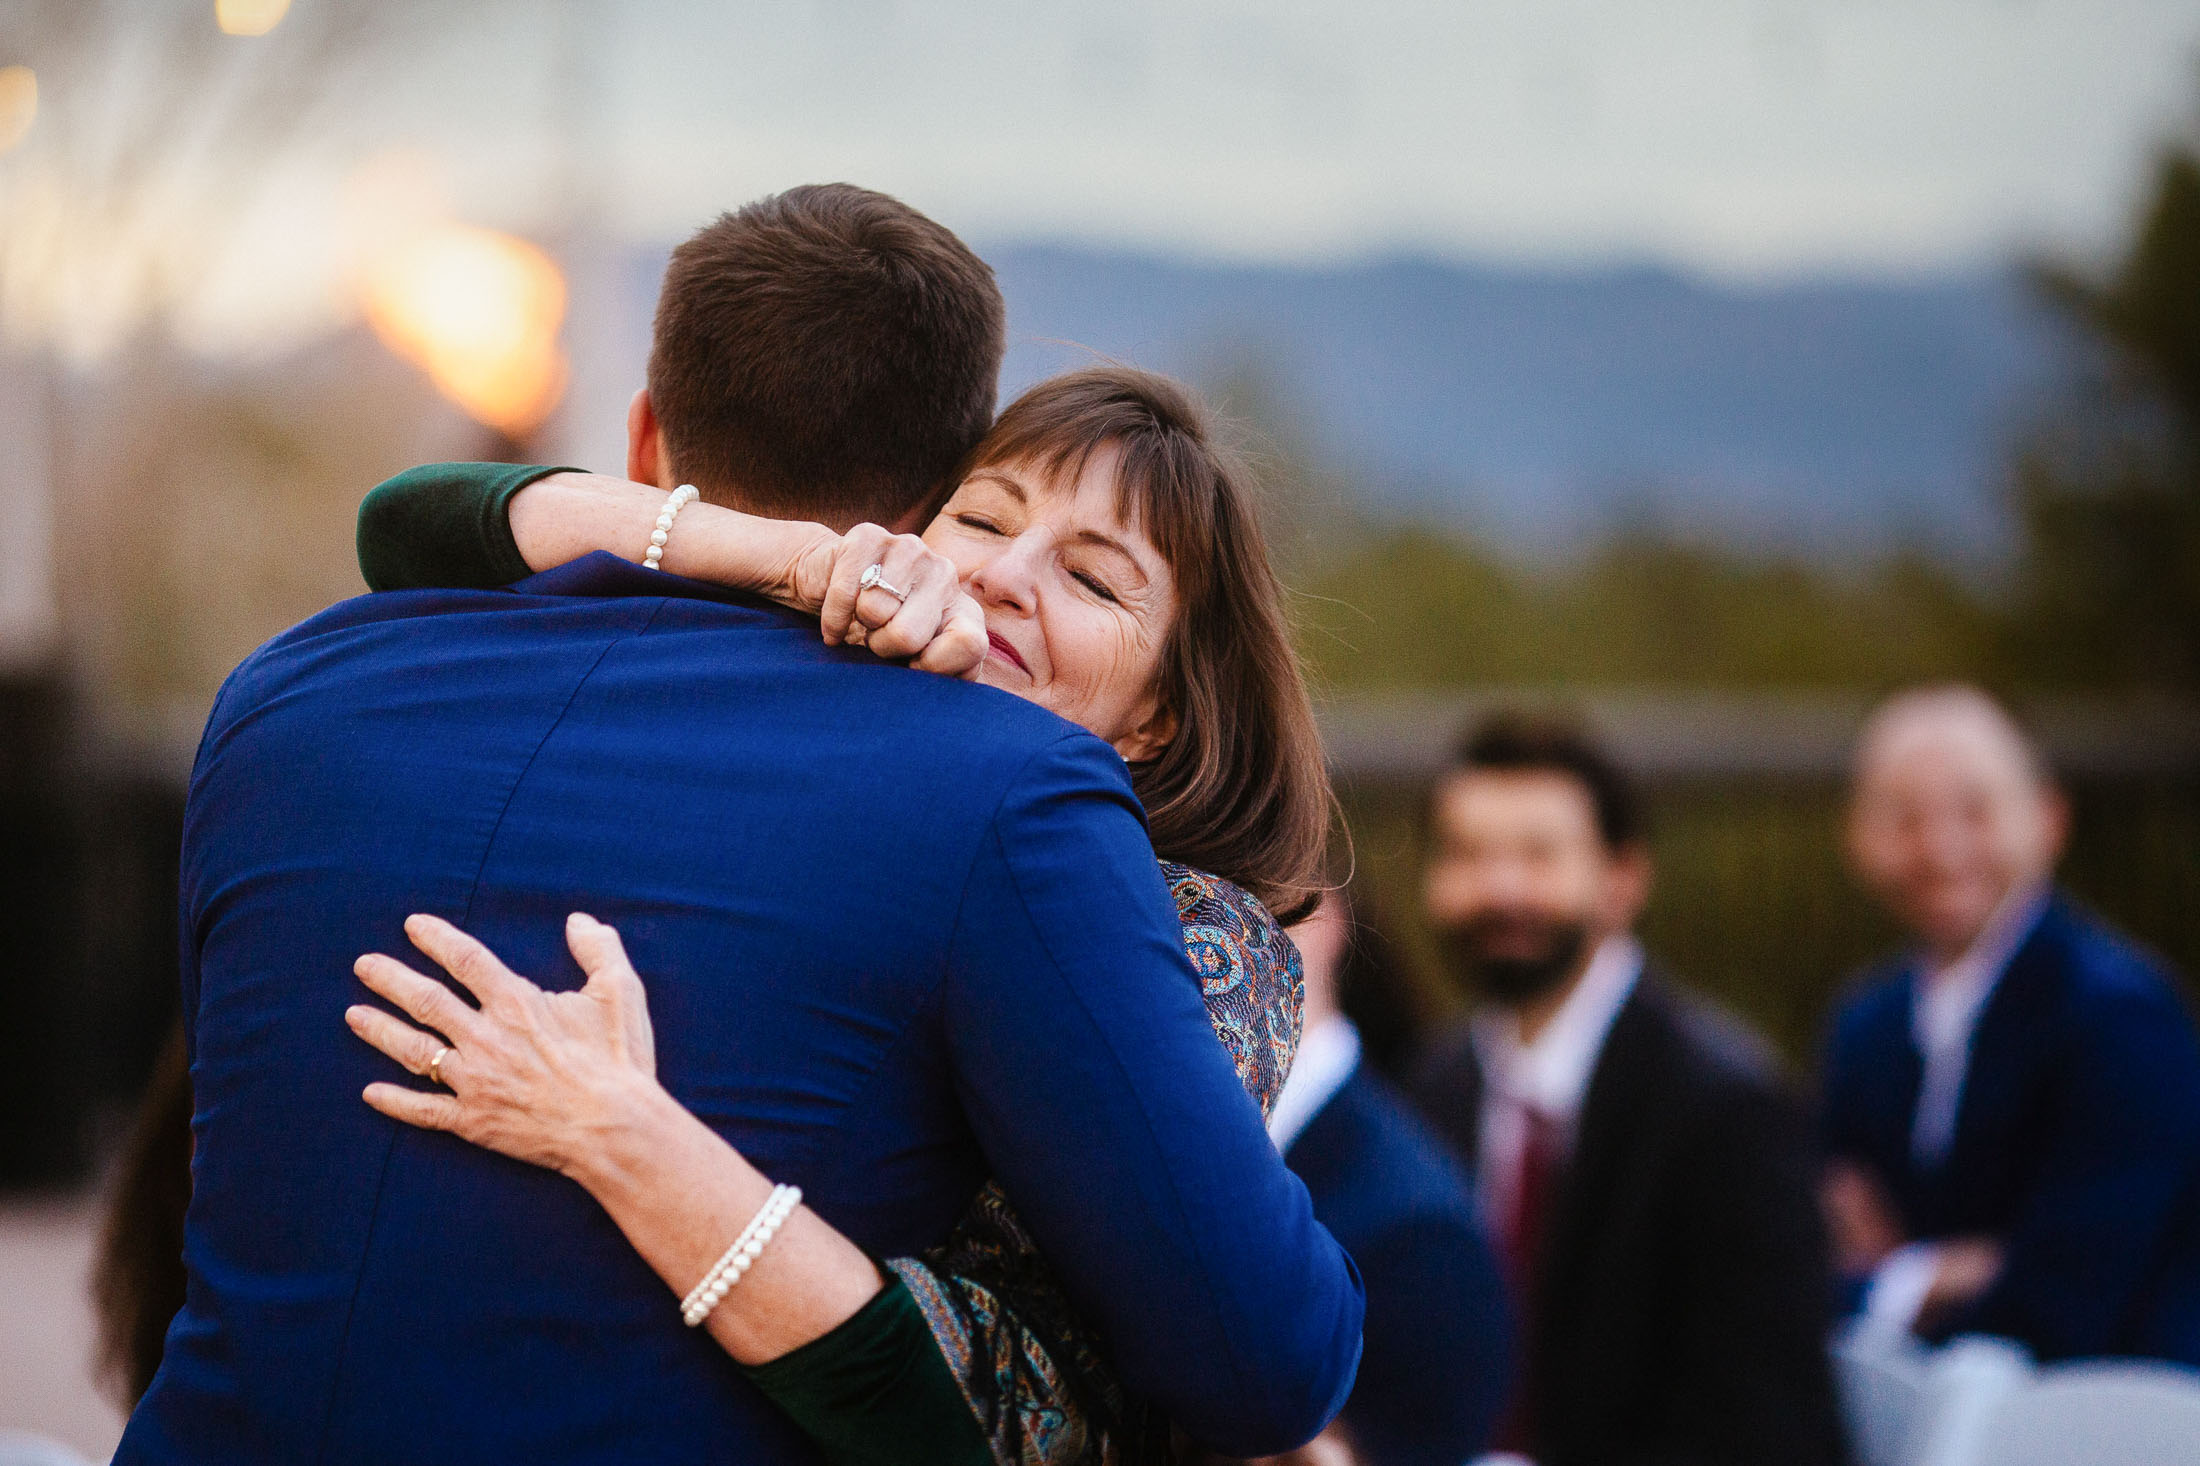 Mother of the groom hugs her son during wedding ceremony.